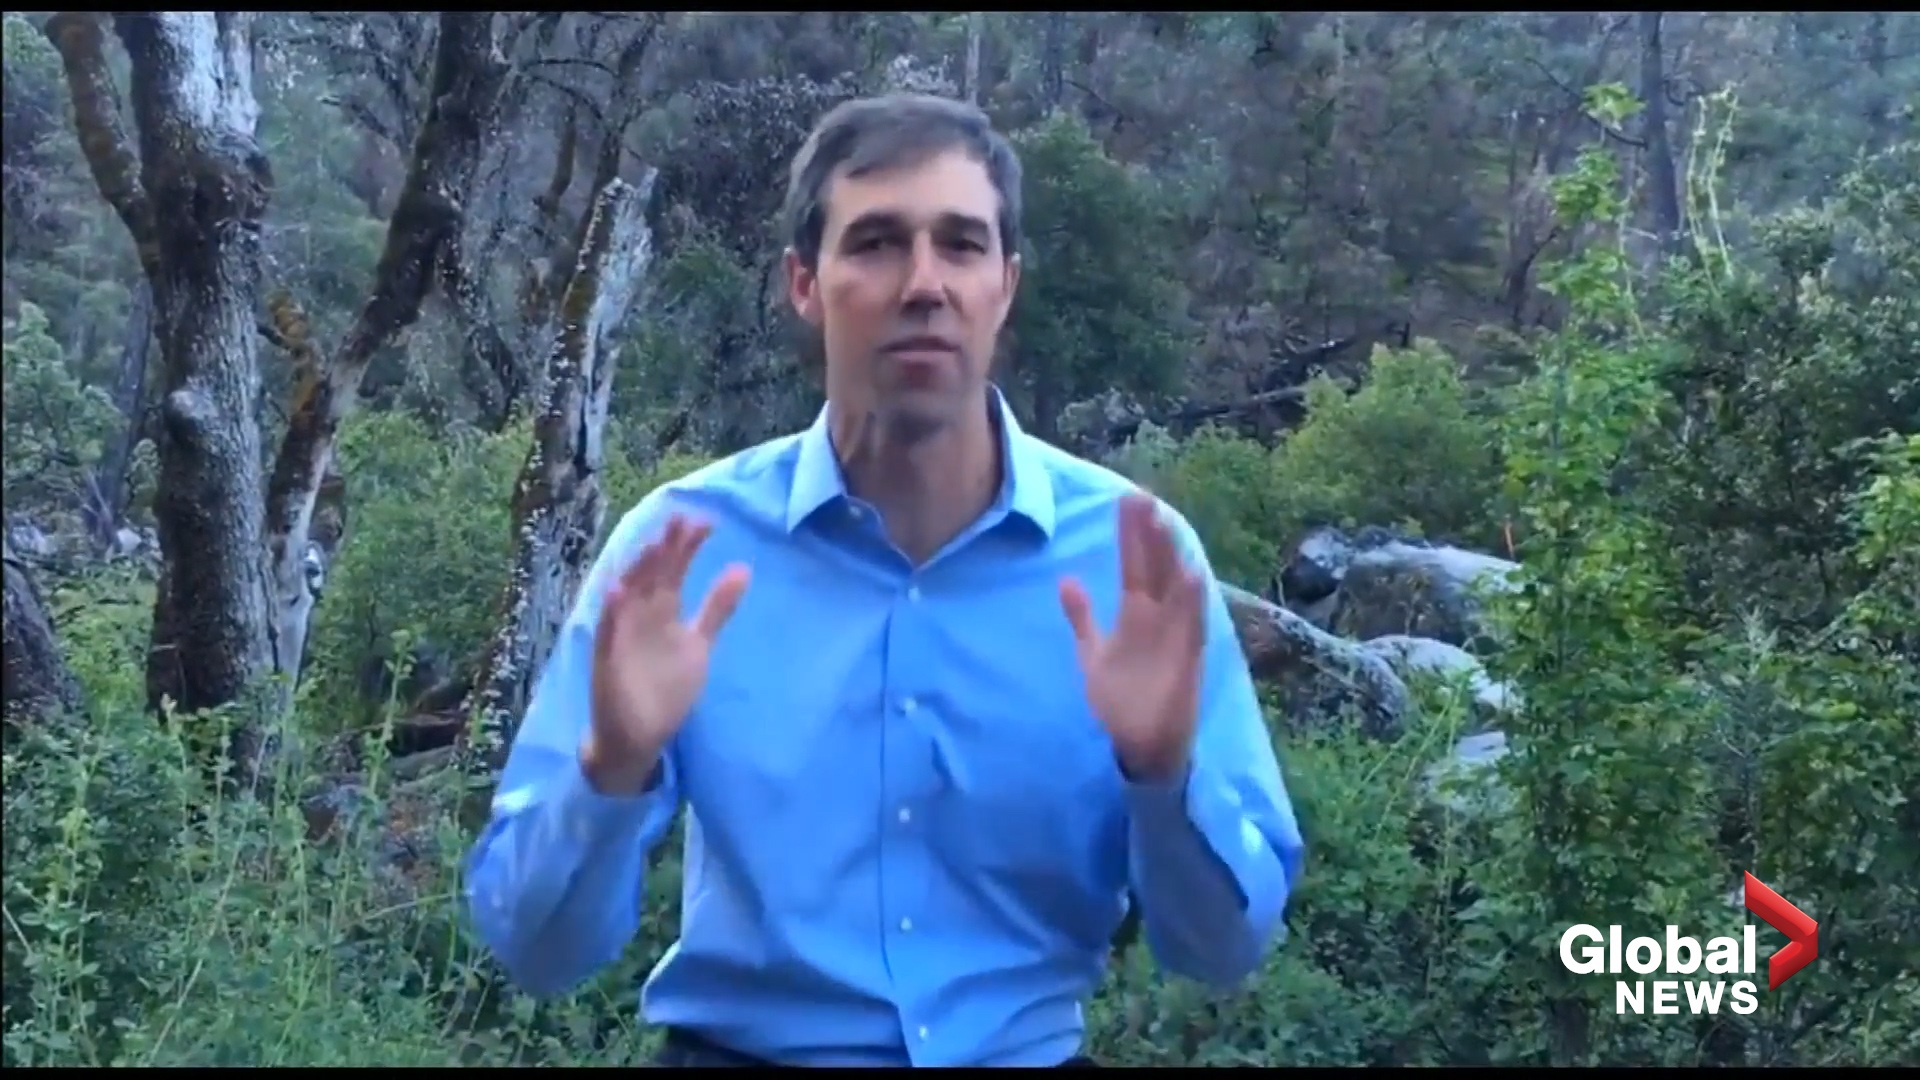 Beto O'Rourke fundraising drops in 2nd quarter